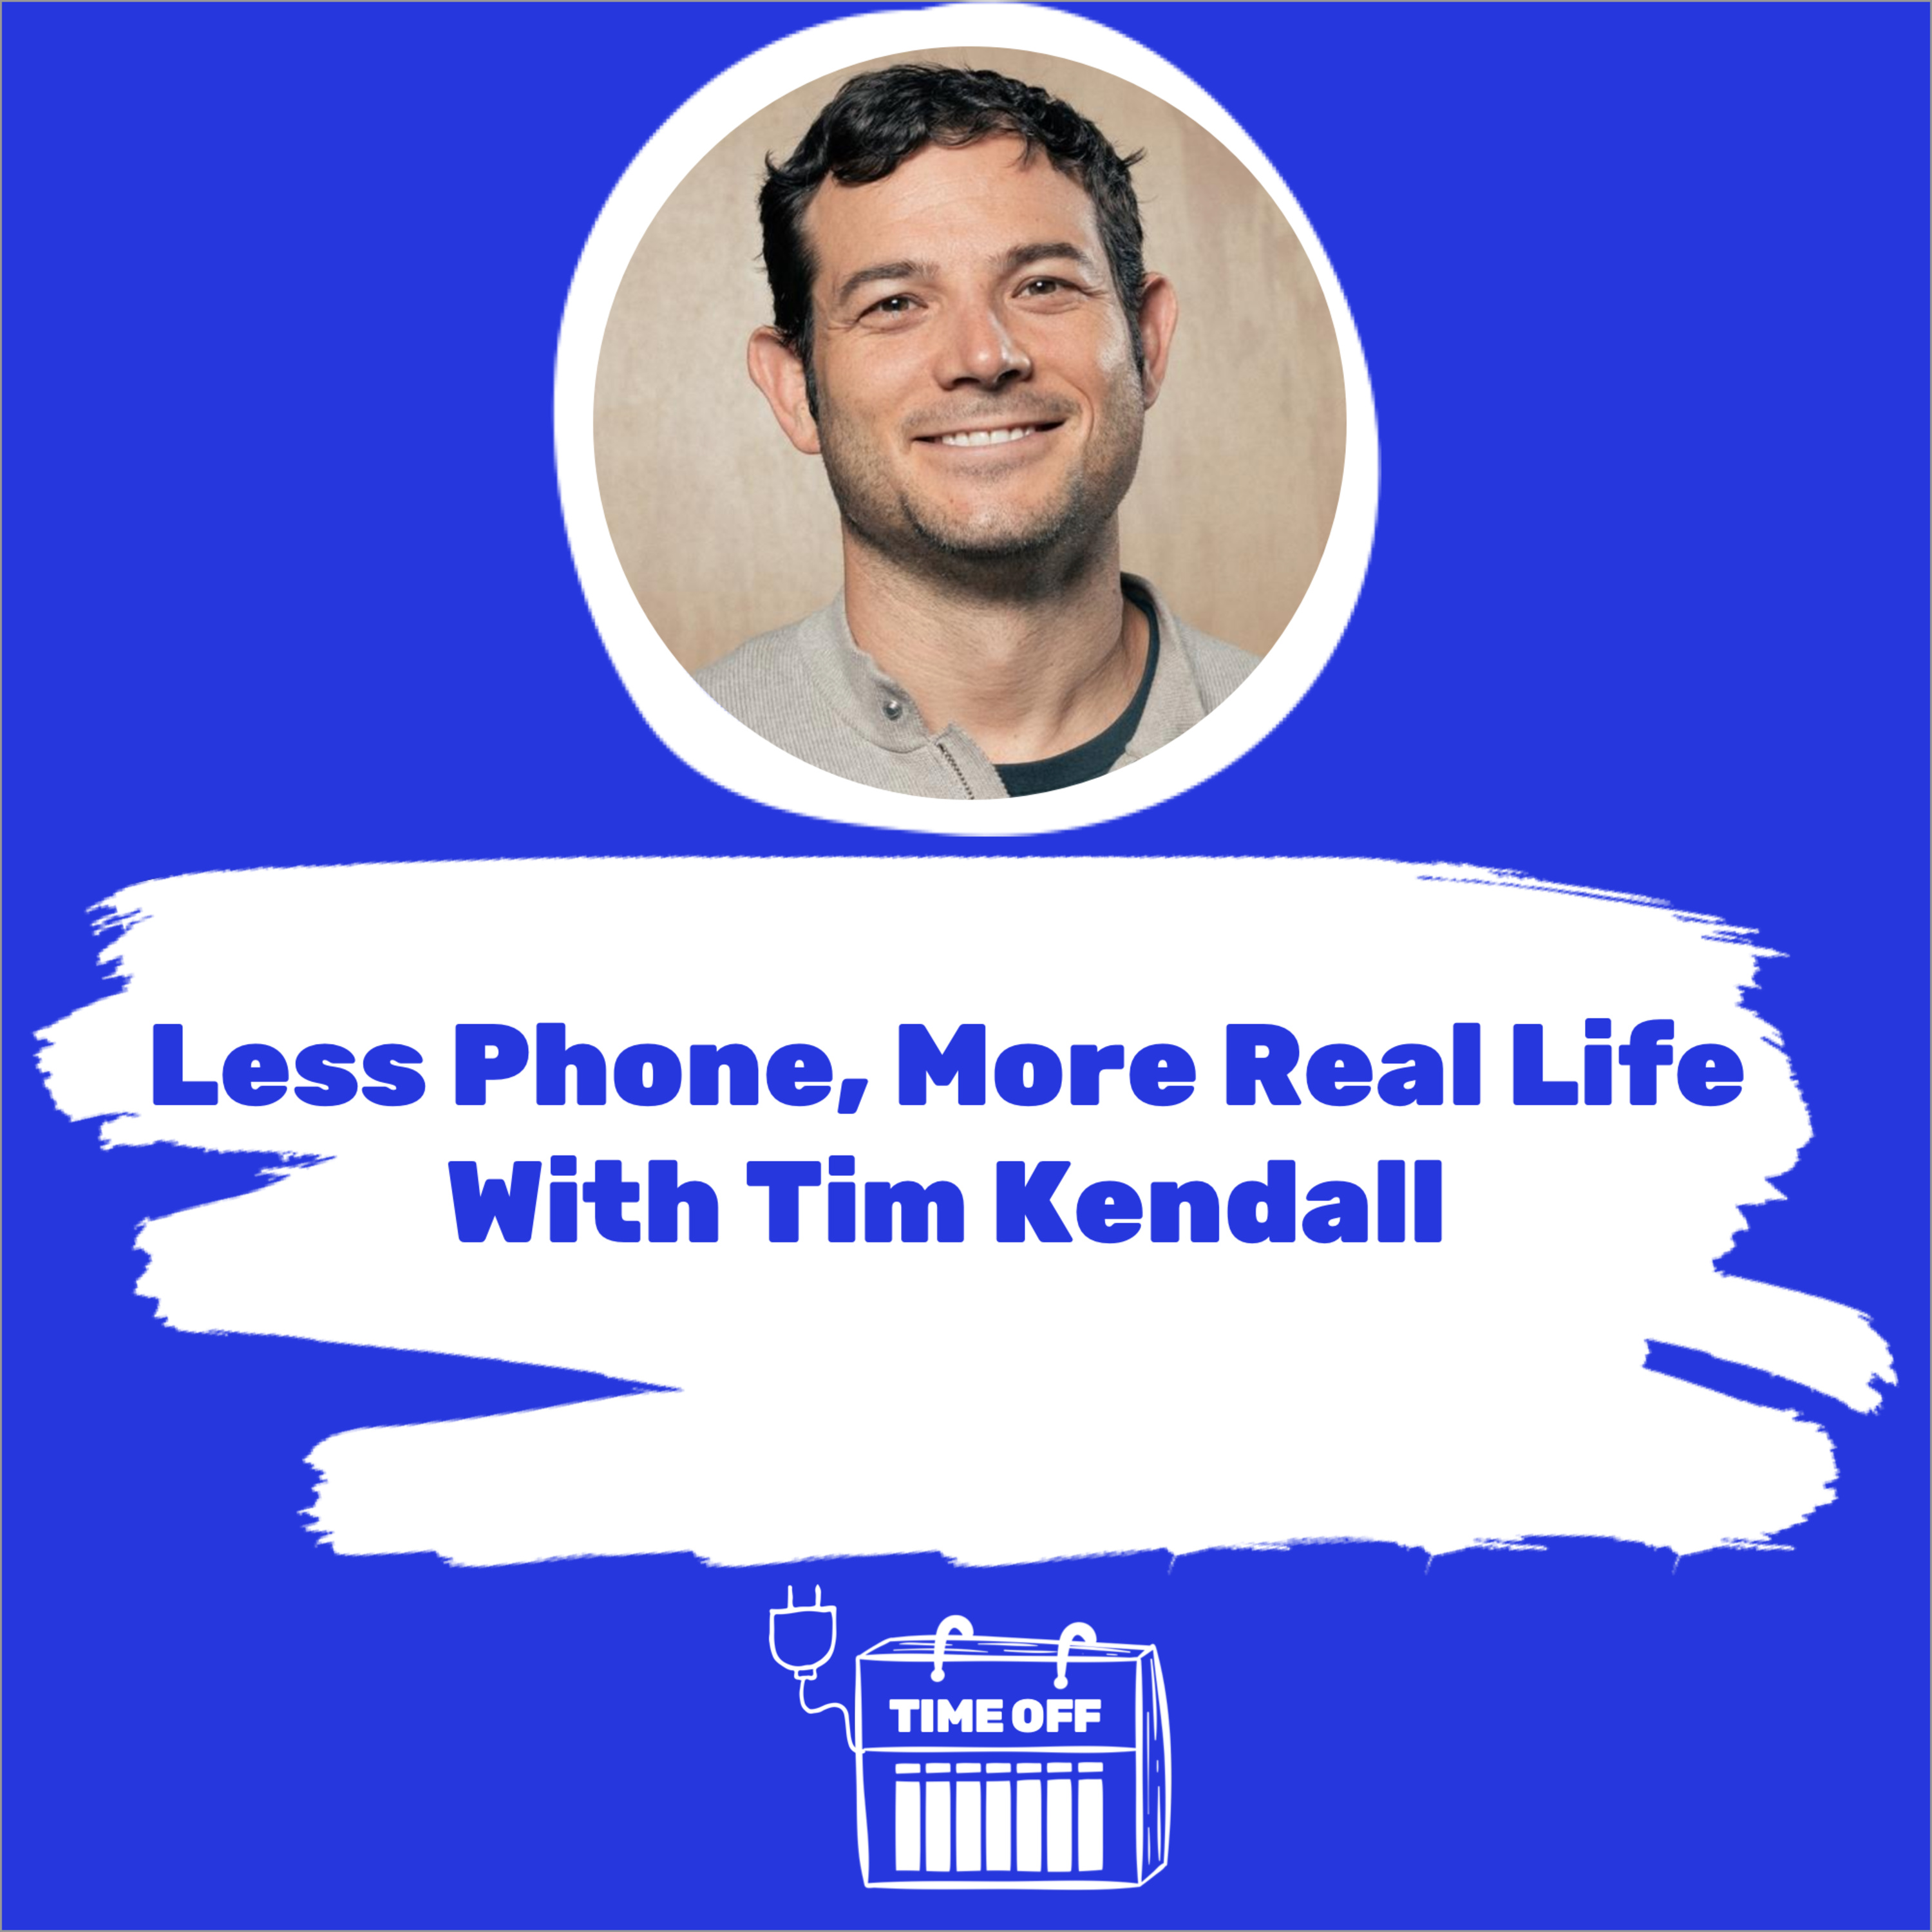 Less Phone, More Real Life With Tim Kendall